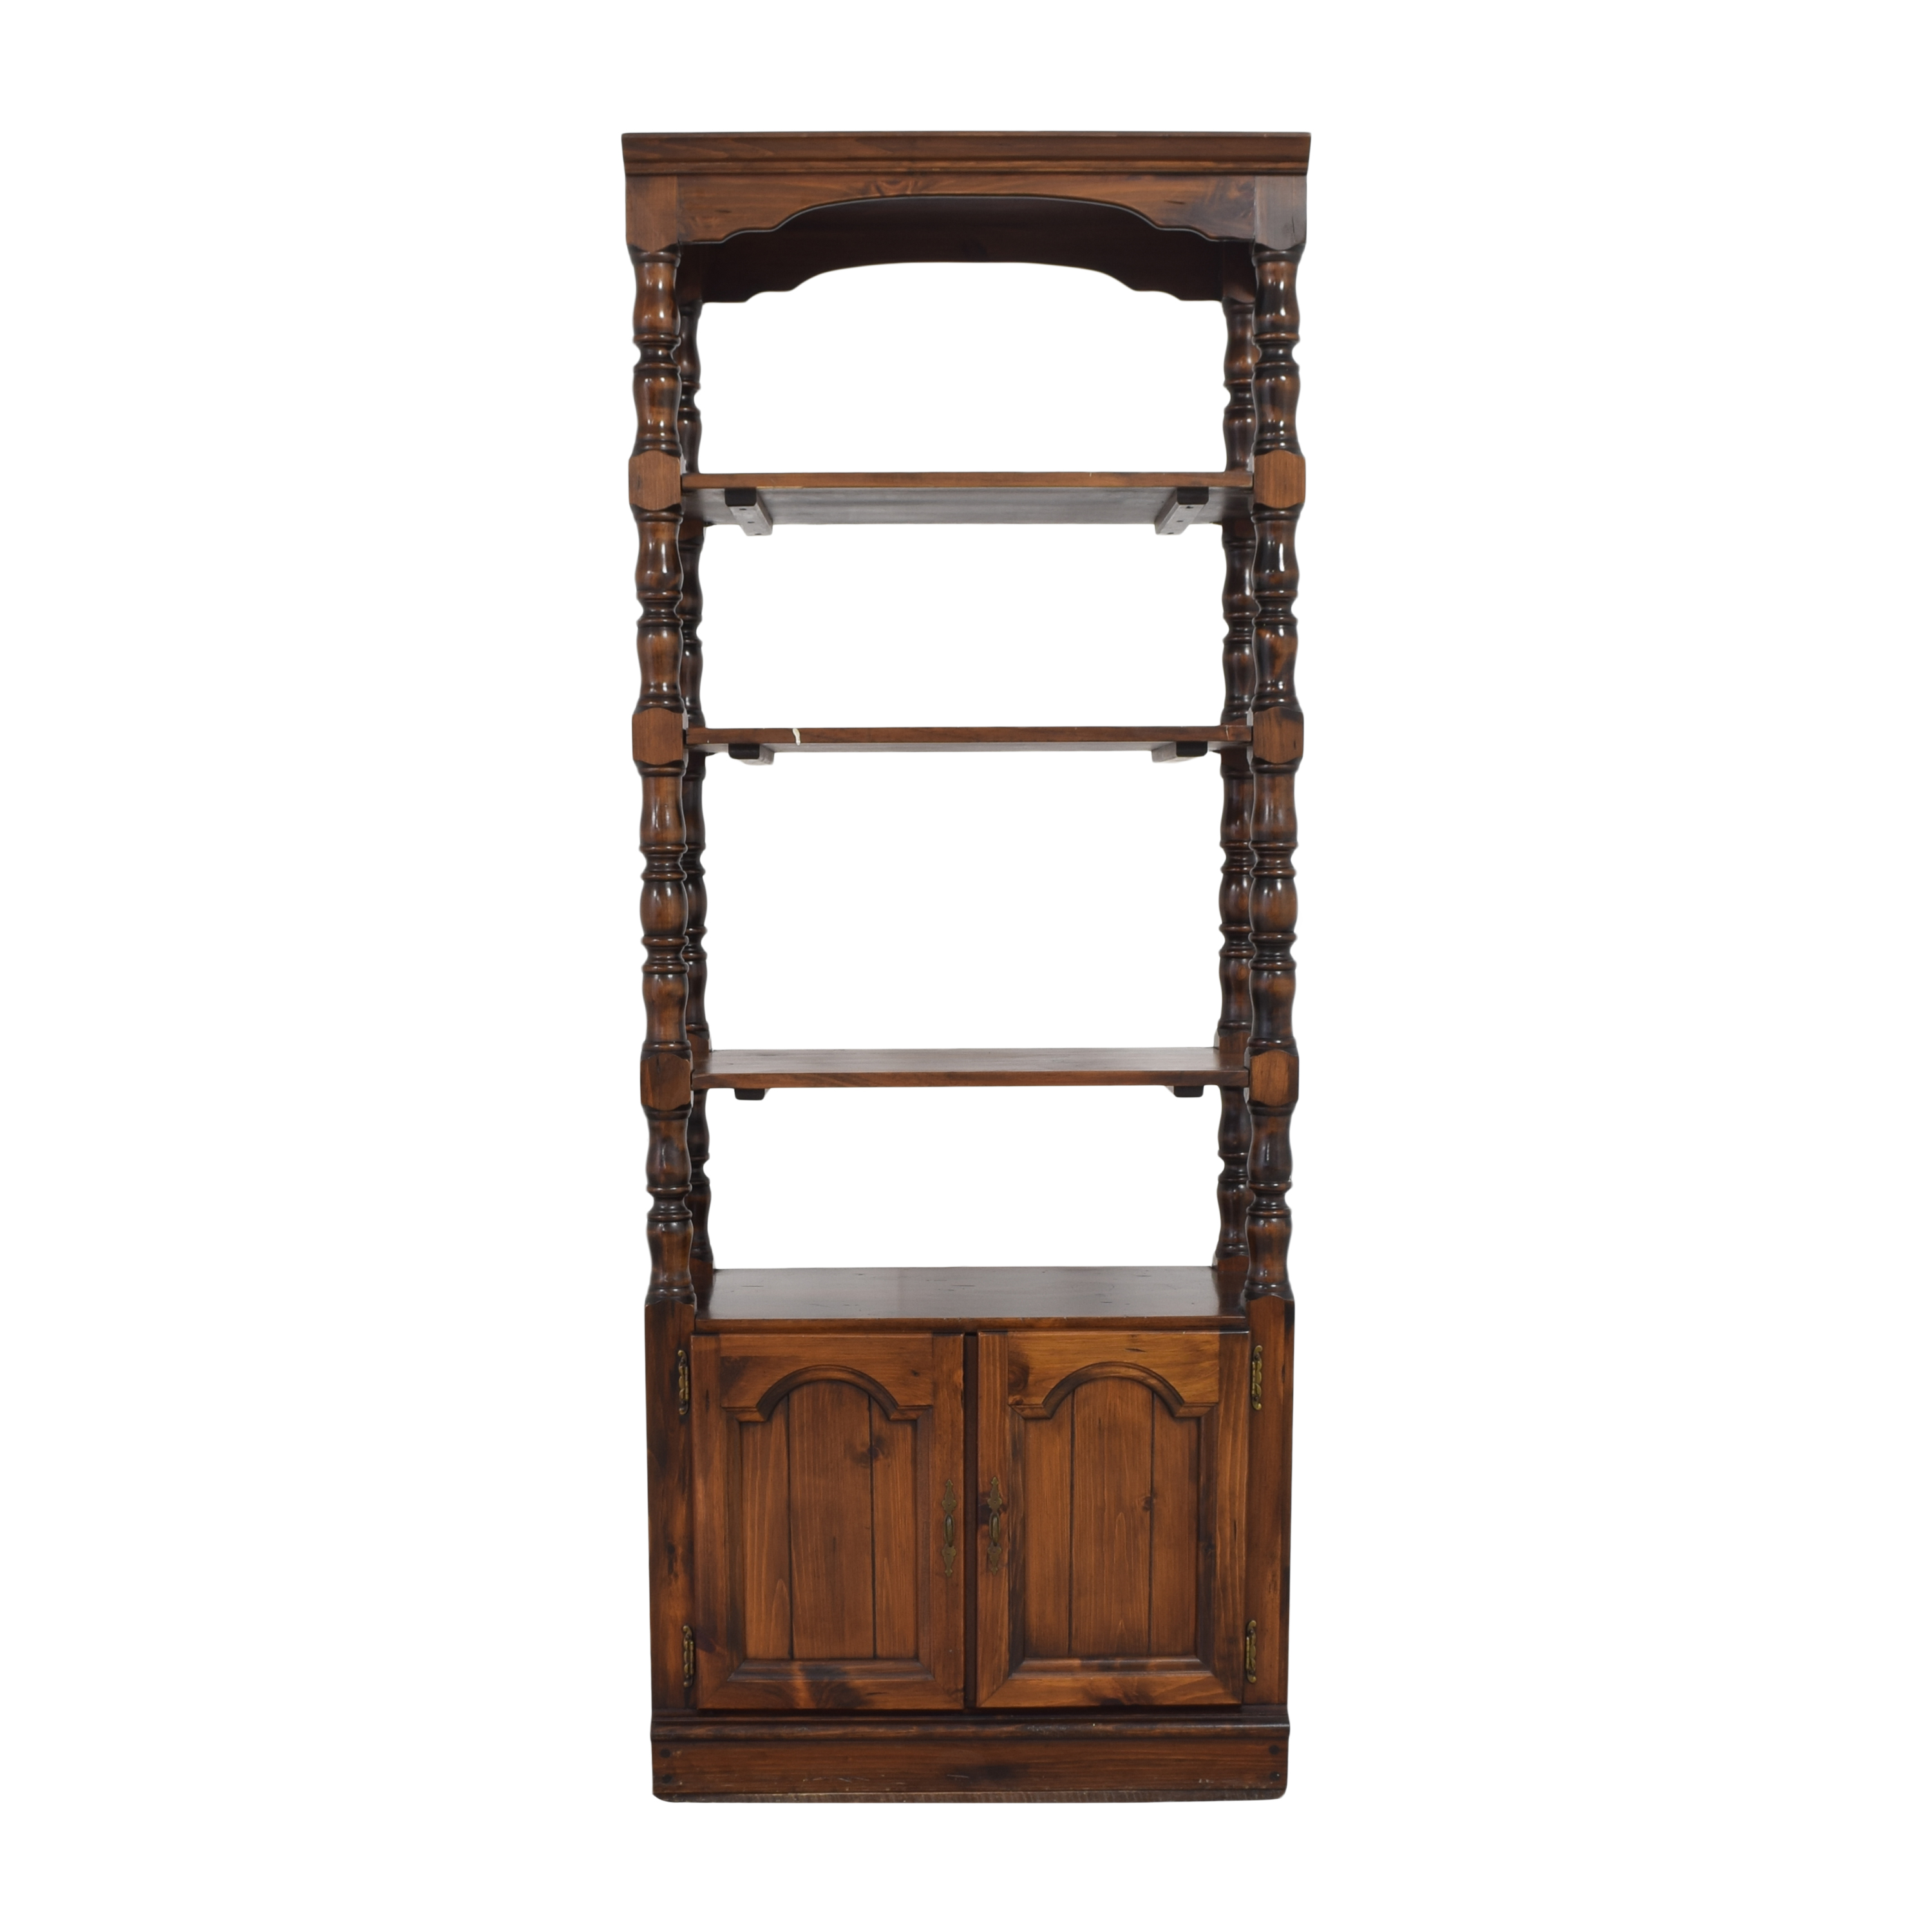 Decorative Shelving Unit with Cabinet pa